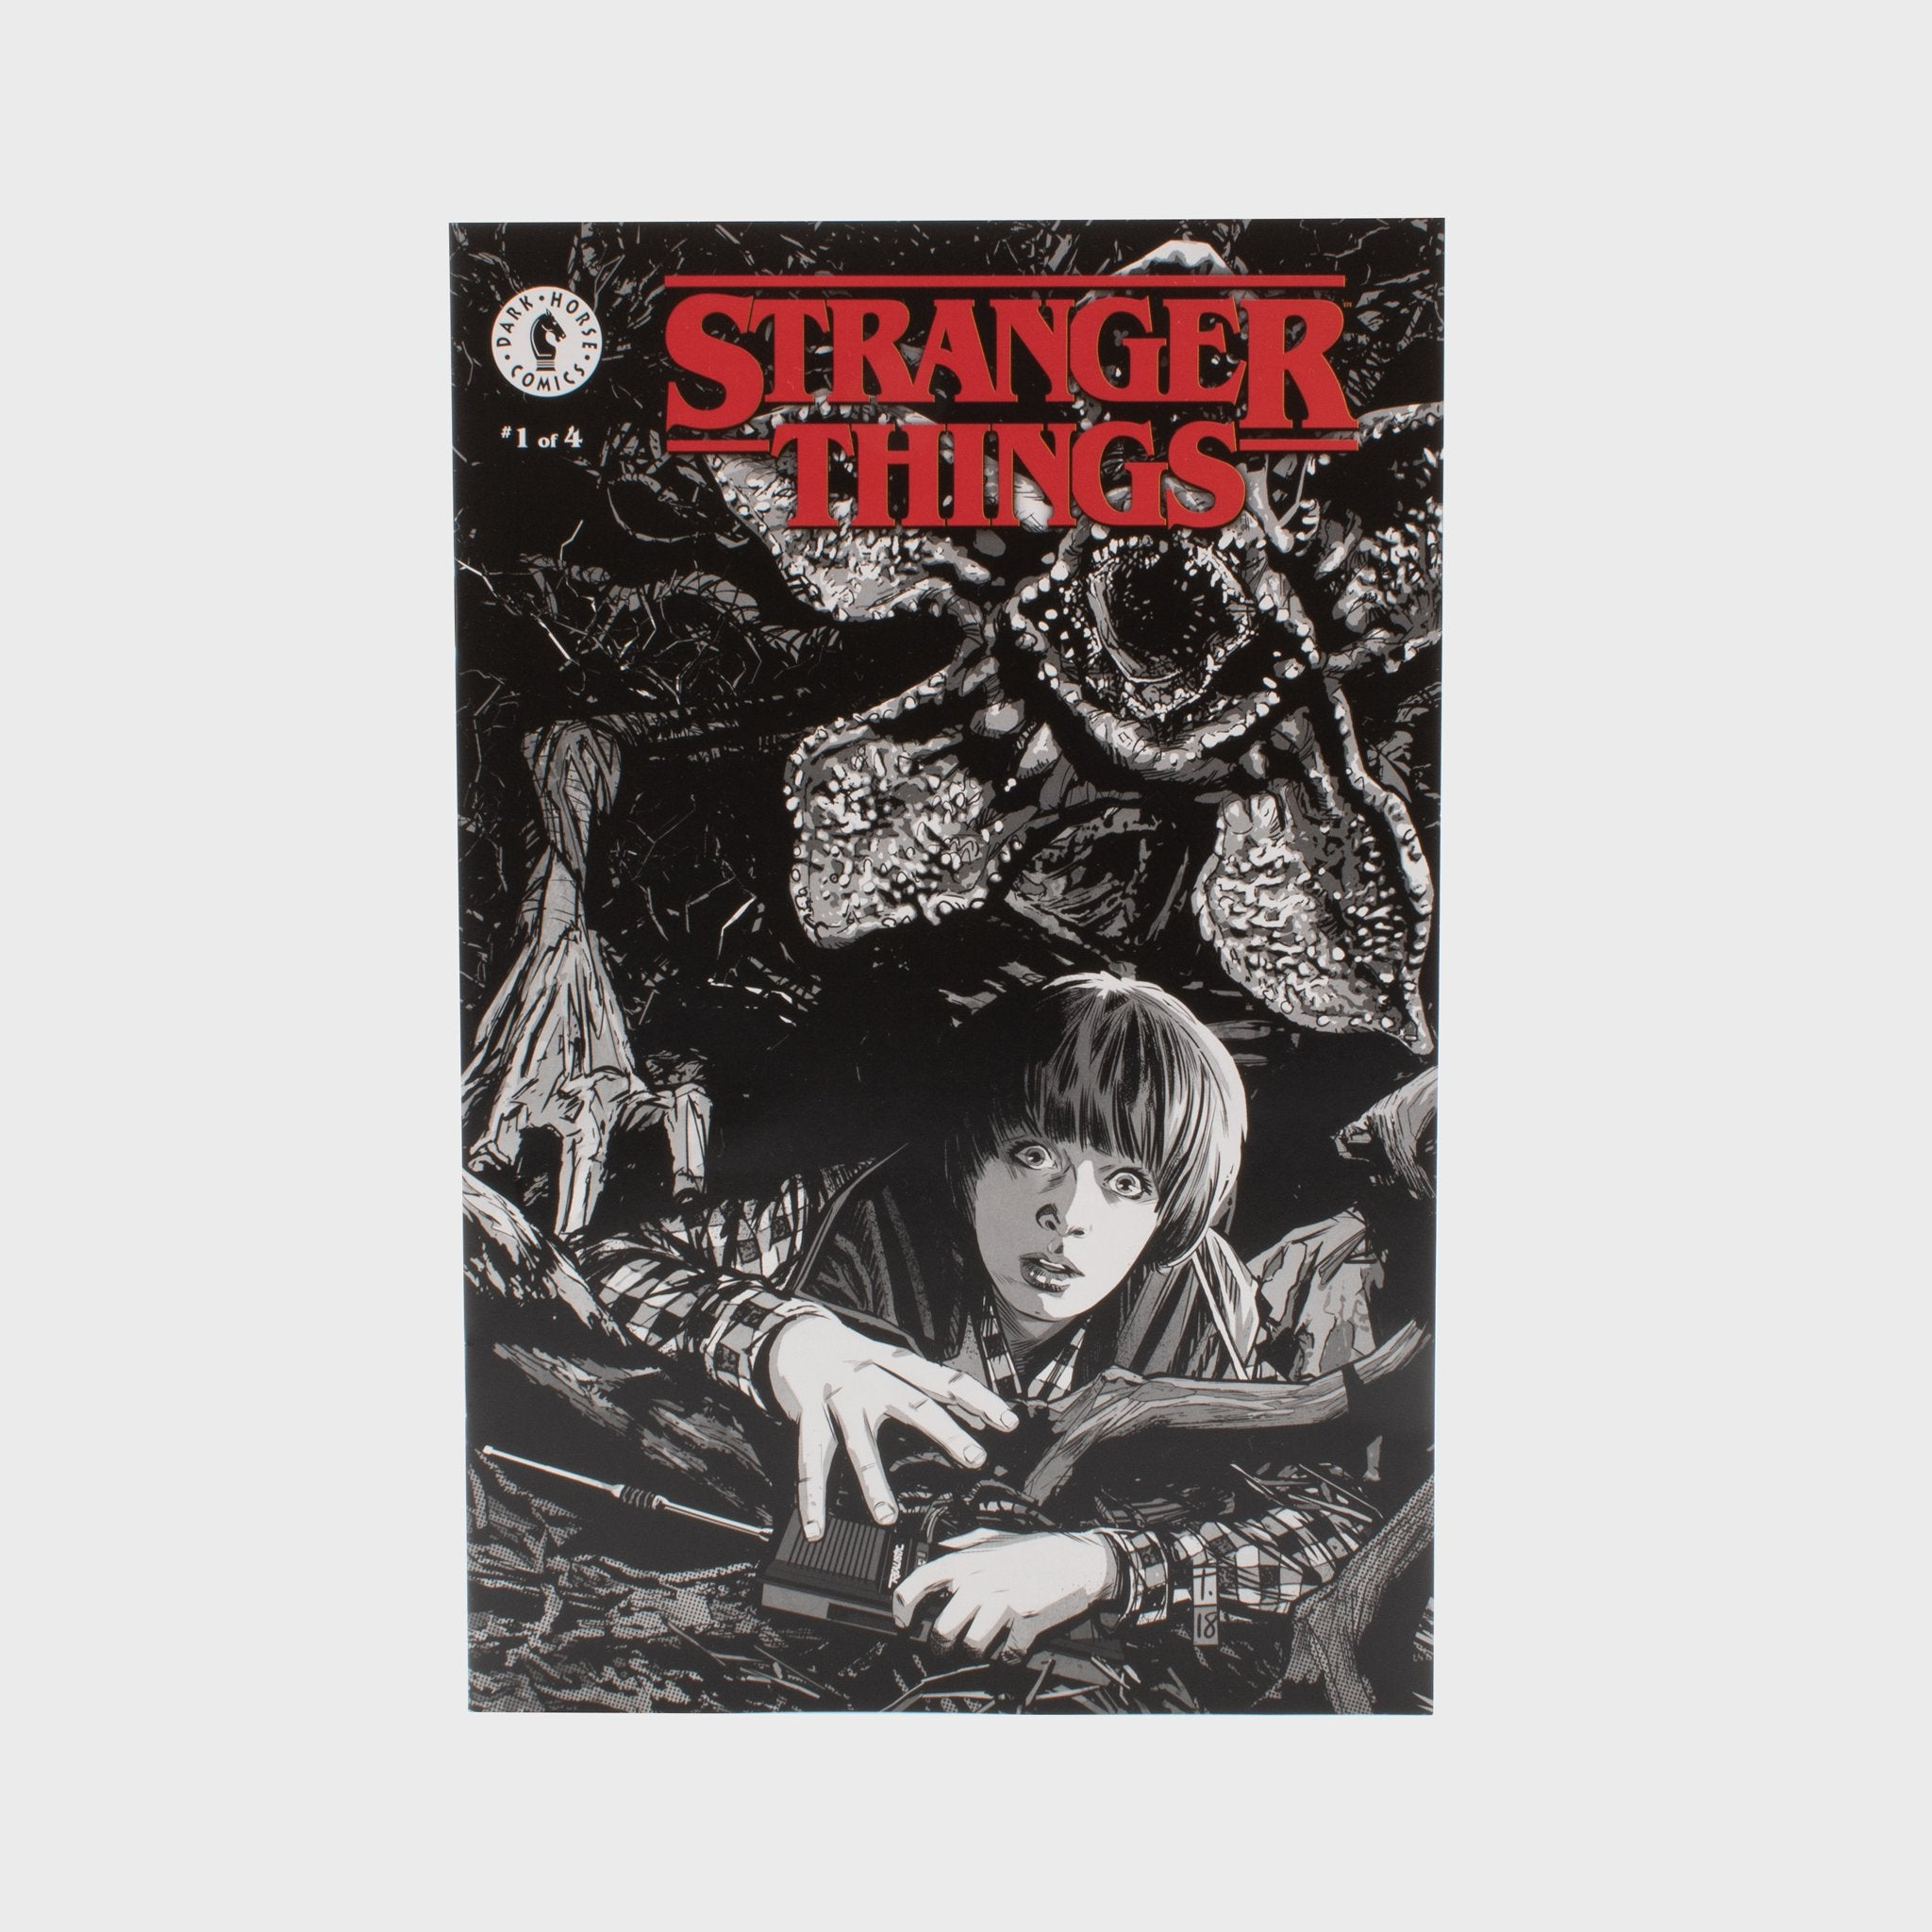 stranger things comic book comics tomm cocker book eleven netflix collector's box collectible exclusive upside down waffles culturefly